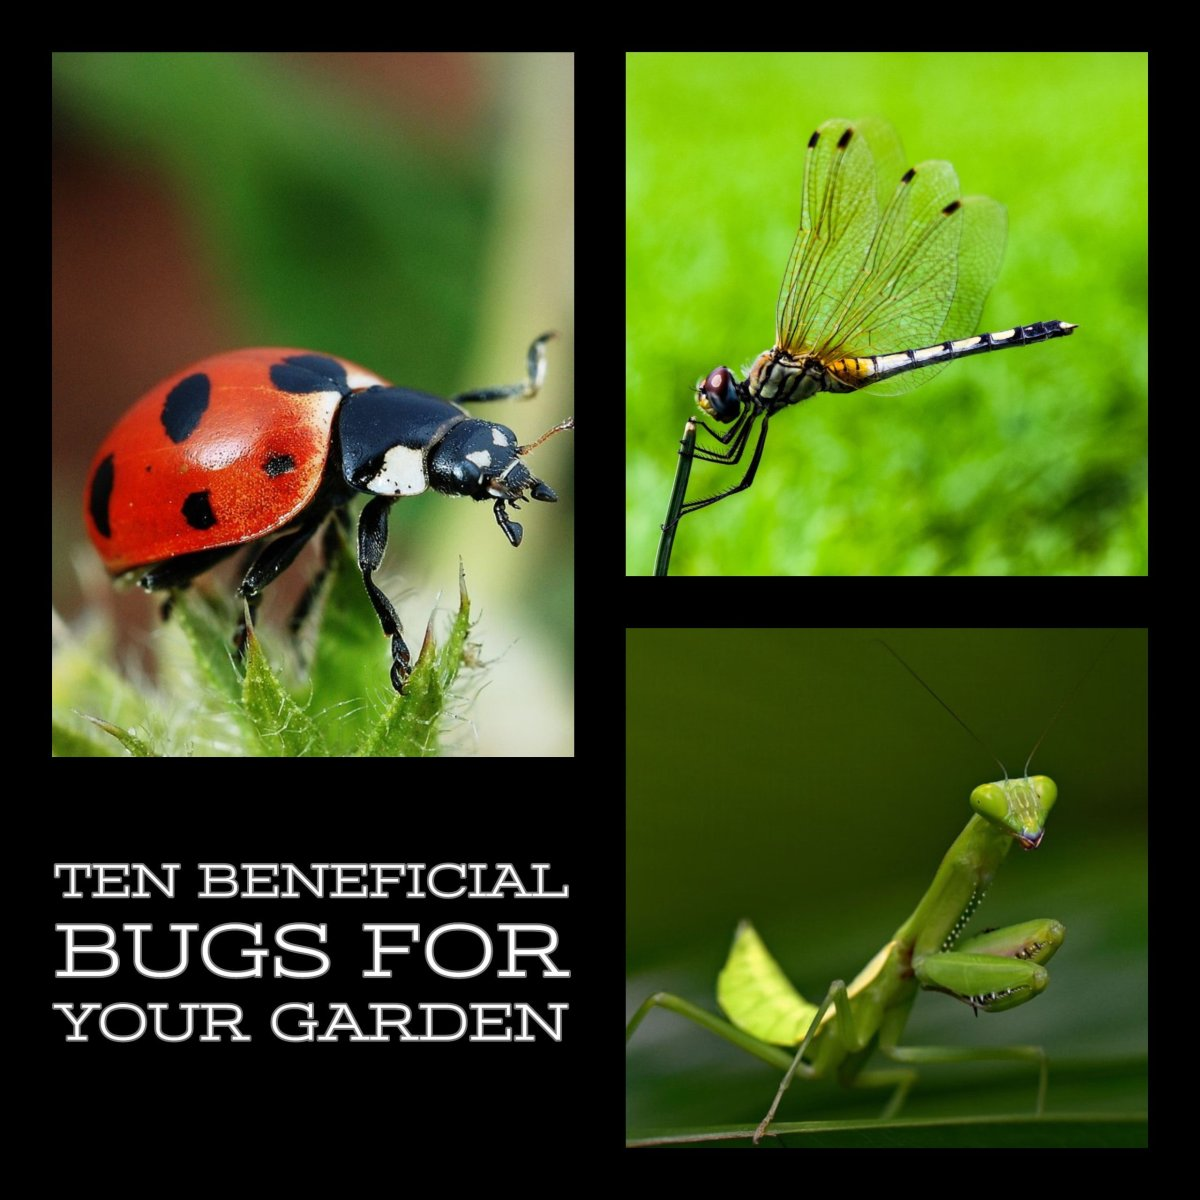 This article ranks the 10 most beneficial bugs for your garden.